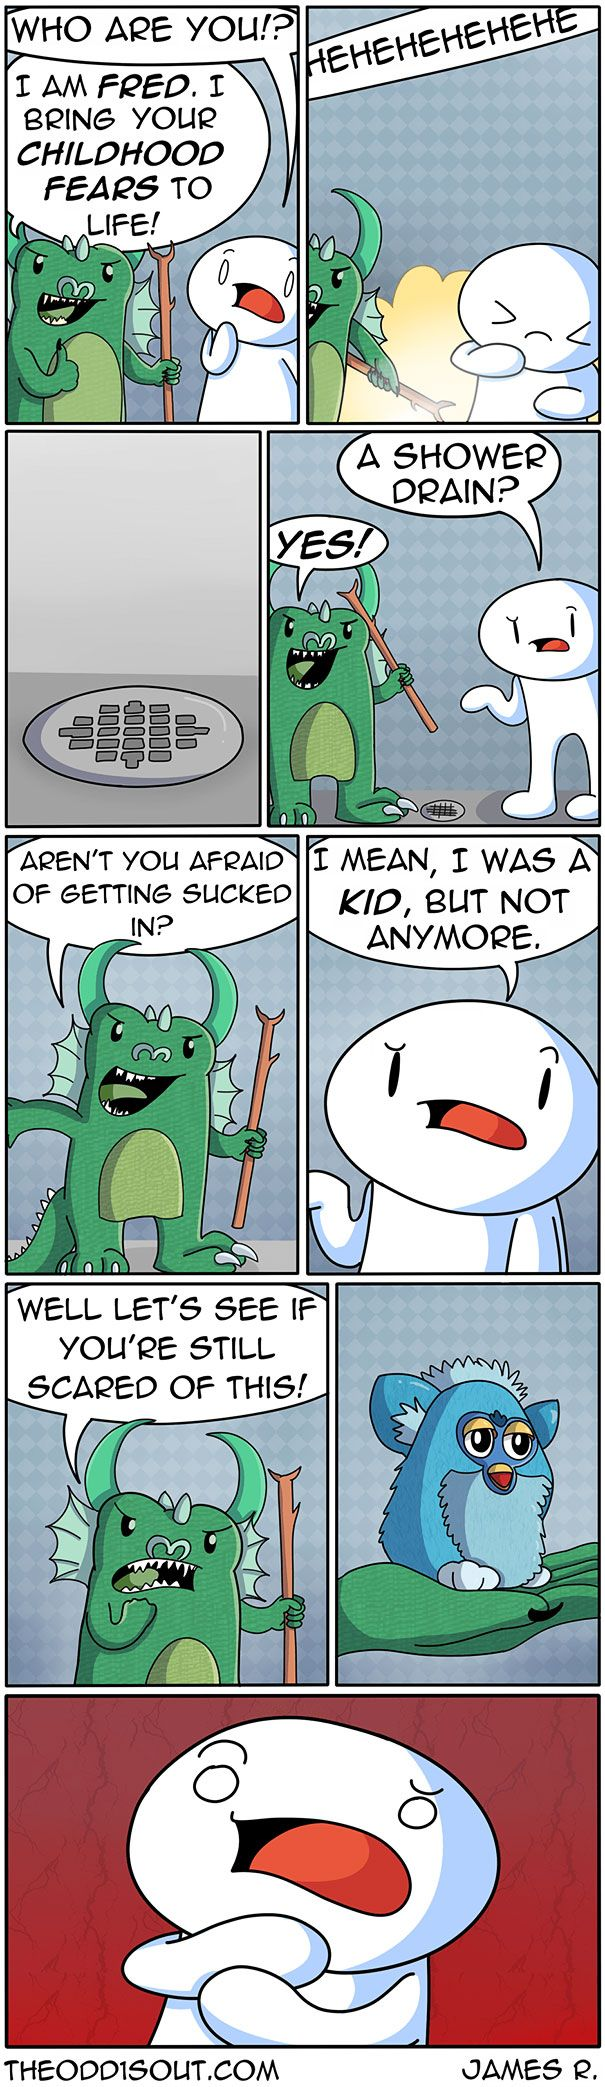 Latest Funny Comics Funny Comics These 275 Funny Comics By Theodd1sout Have The Most Unexpected Endings 6